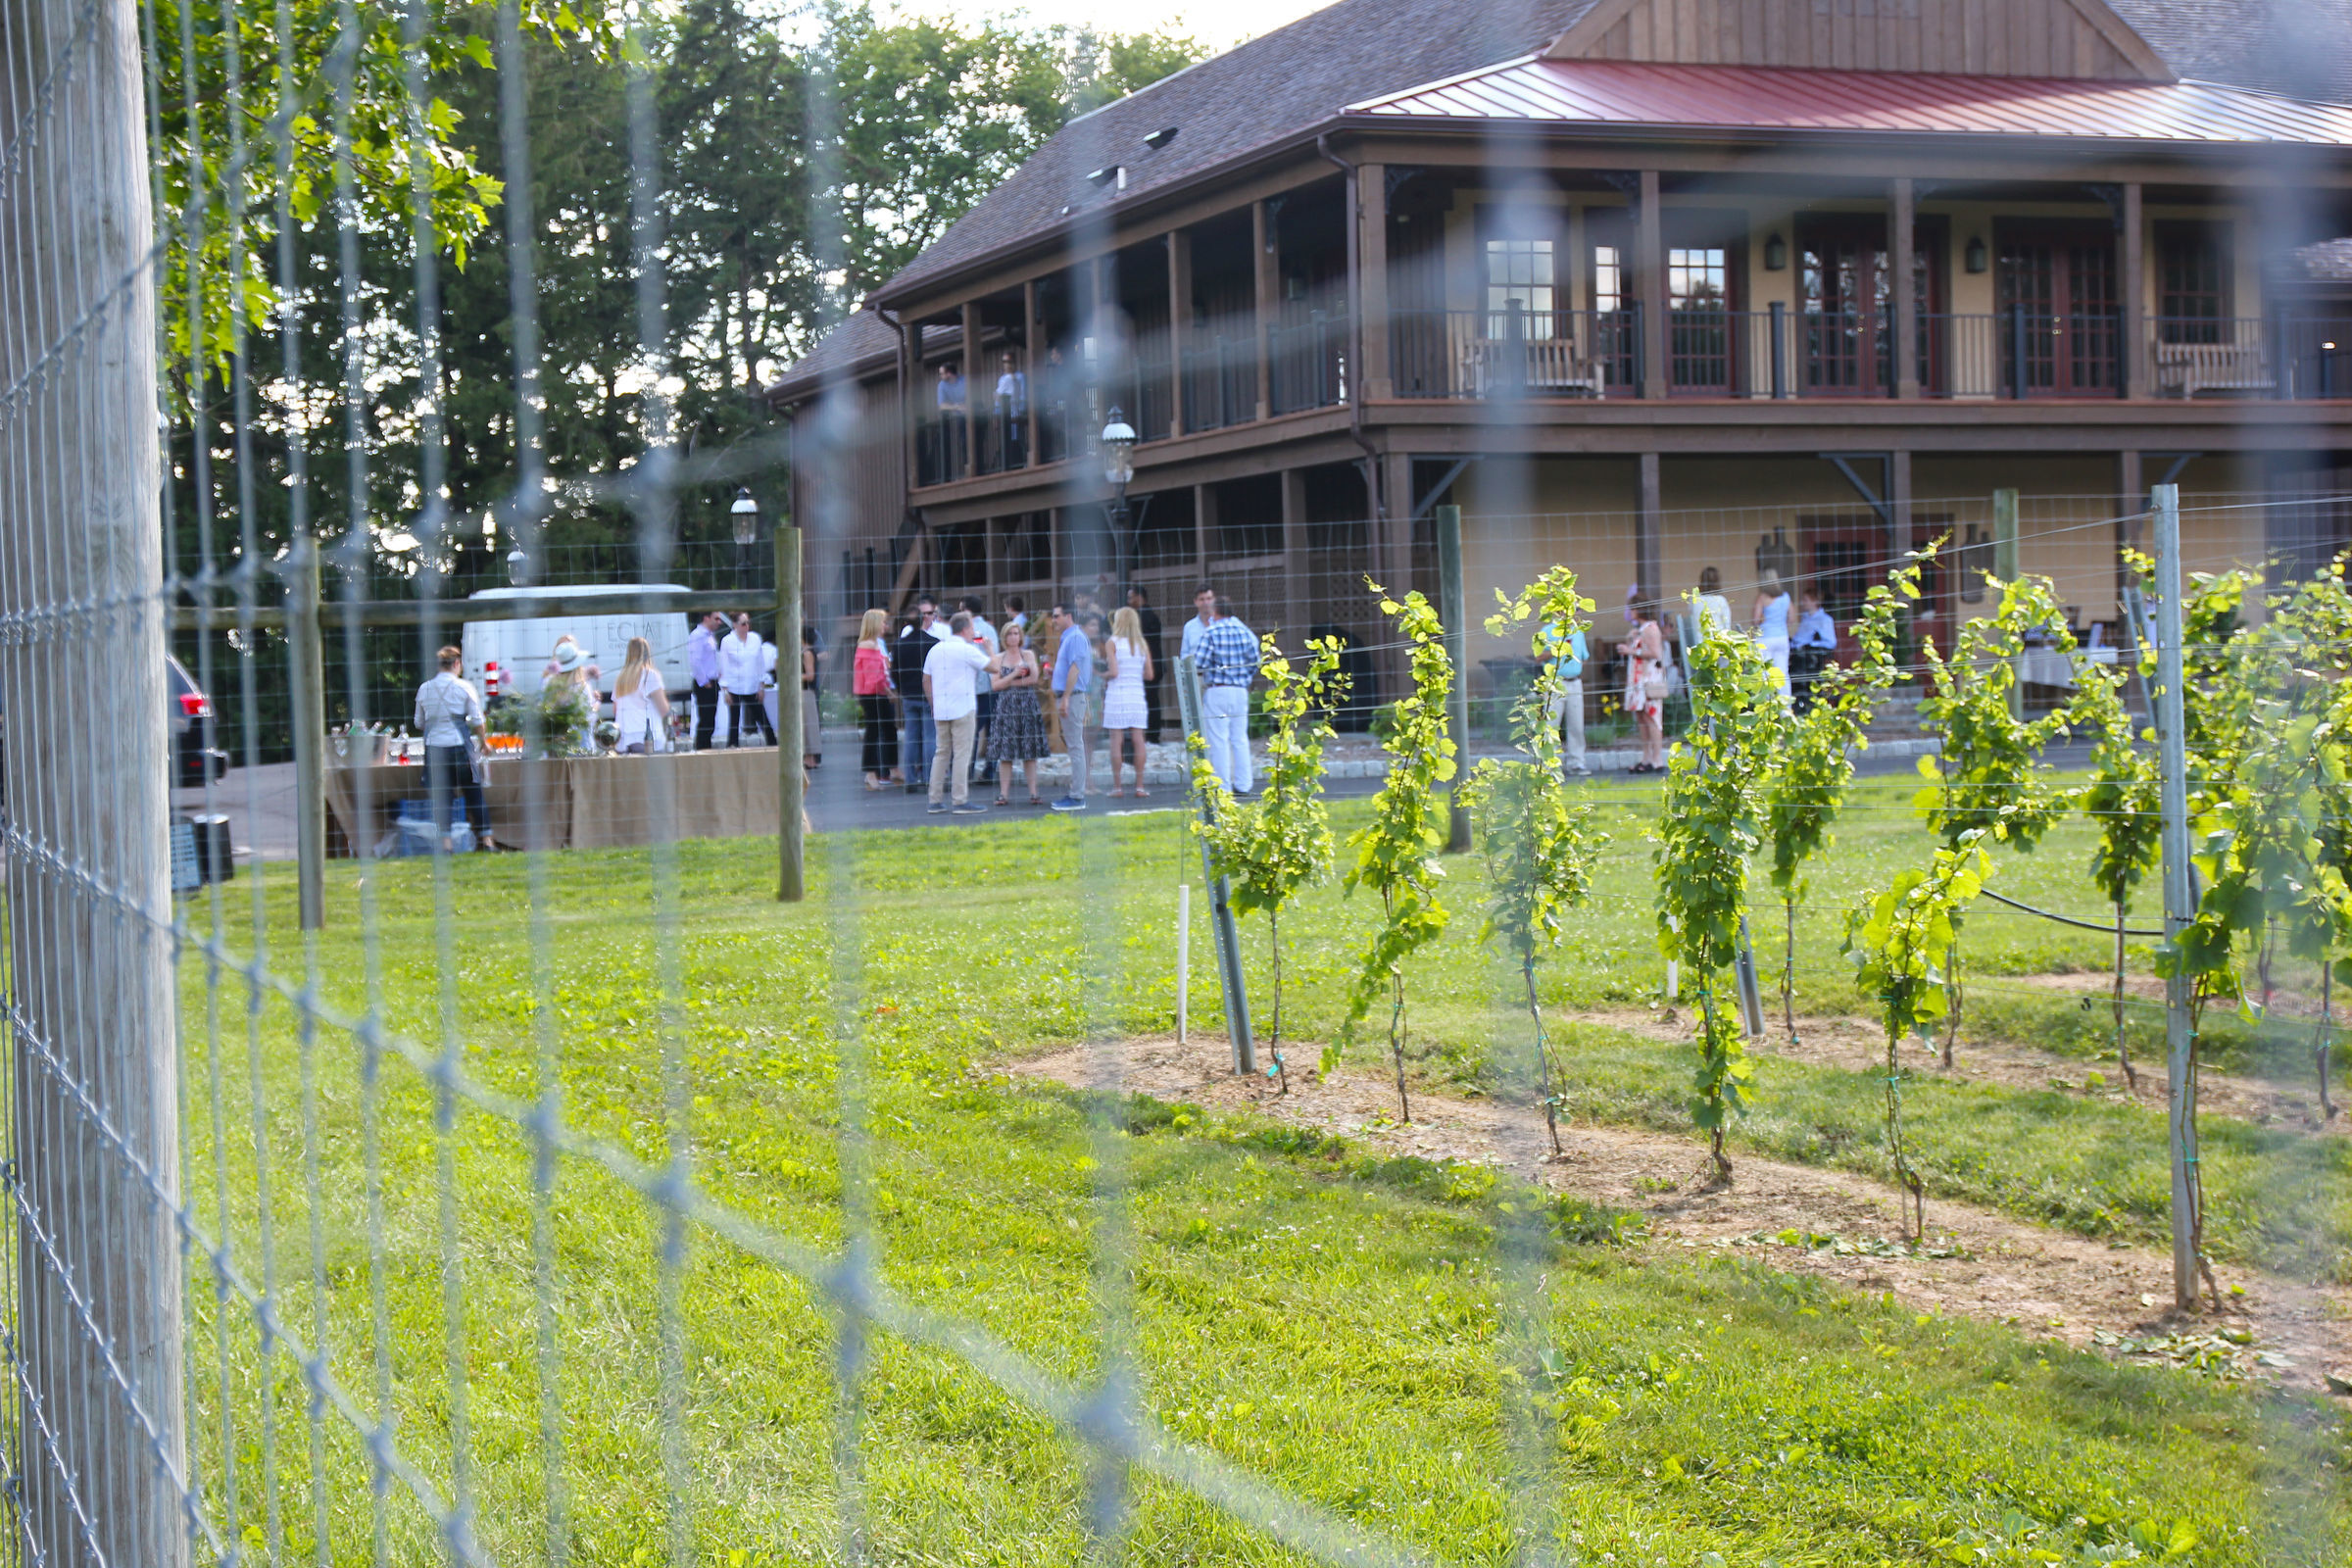 The attendees gathered by one of the vineyards at Karamoor. (MICHAEL KLEIN / Staff)